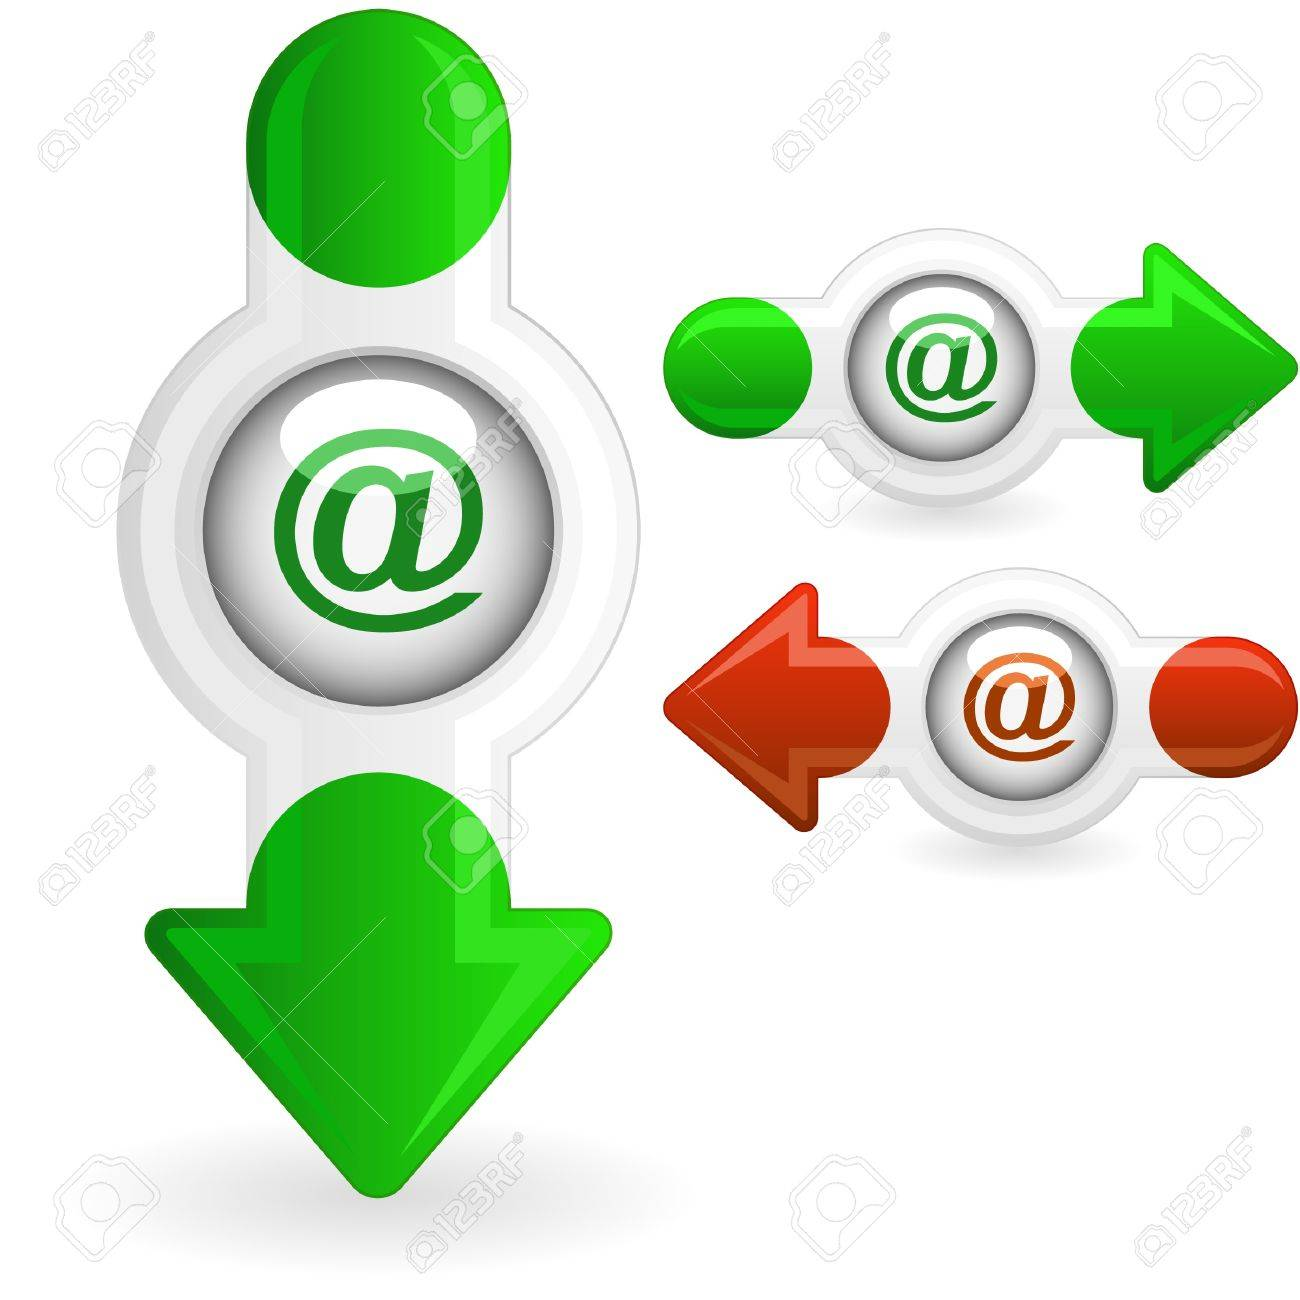 E-mail icon set for web. Stock Vector - 10066895